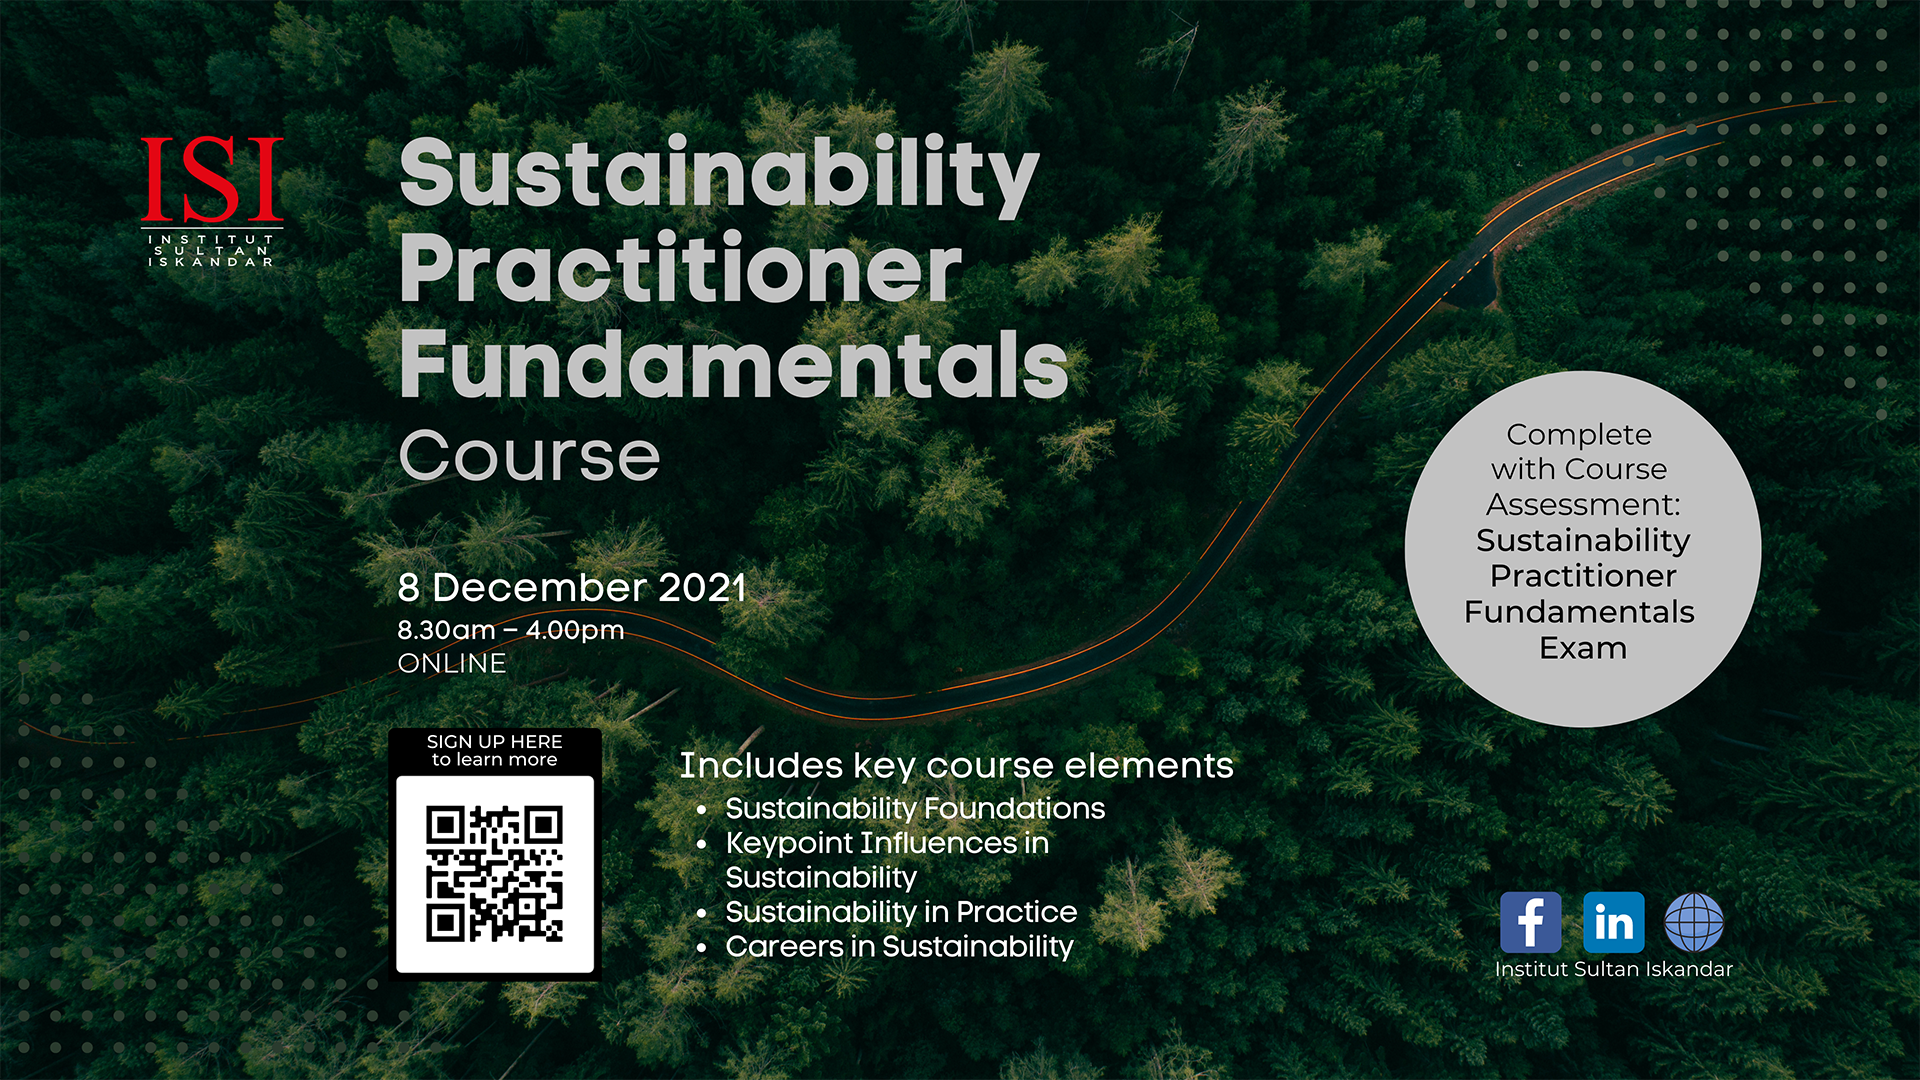 Sustainability Practitioner Fundamentals Course